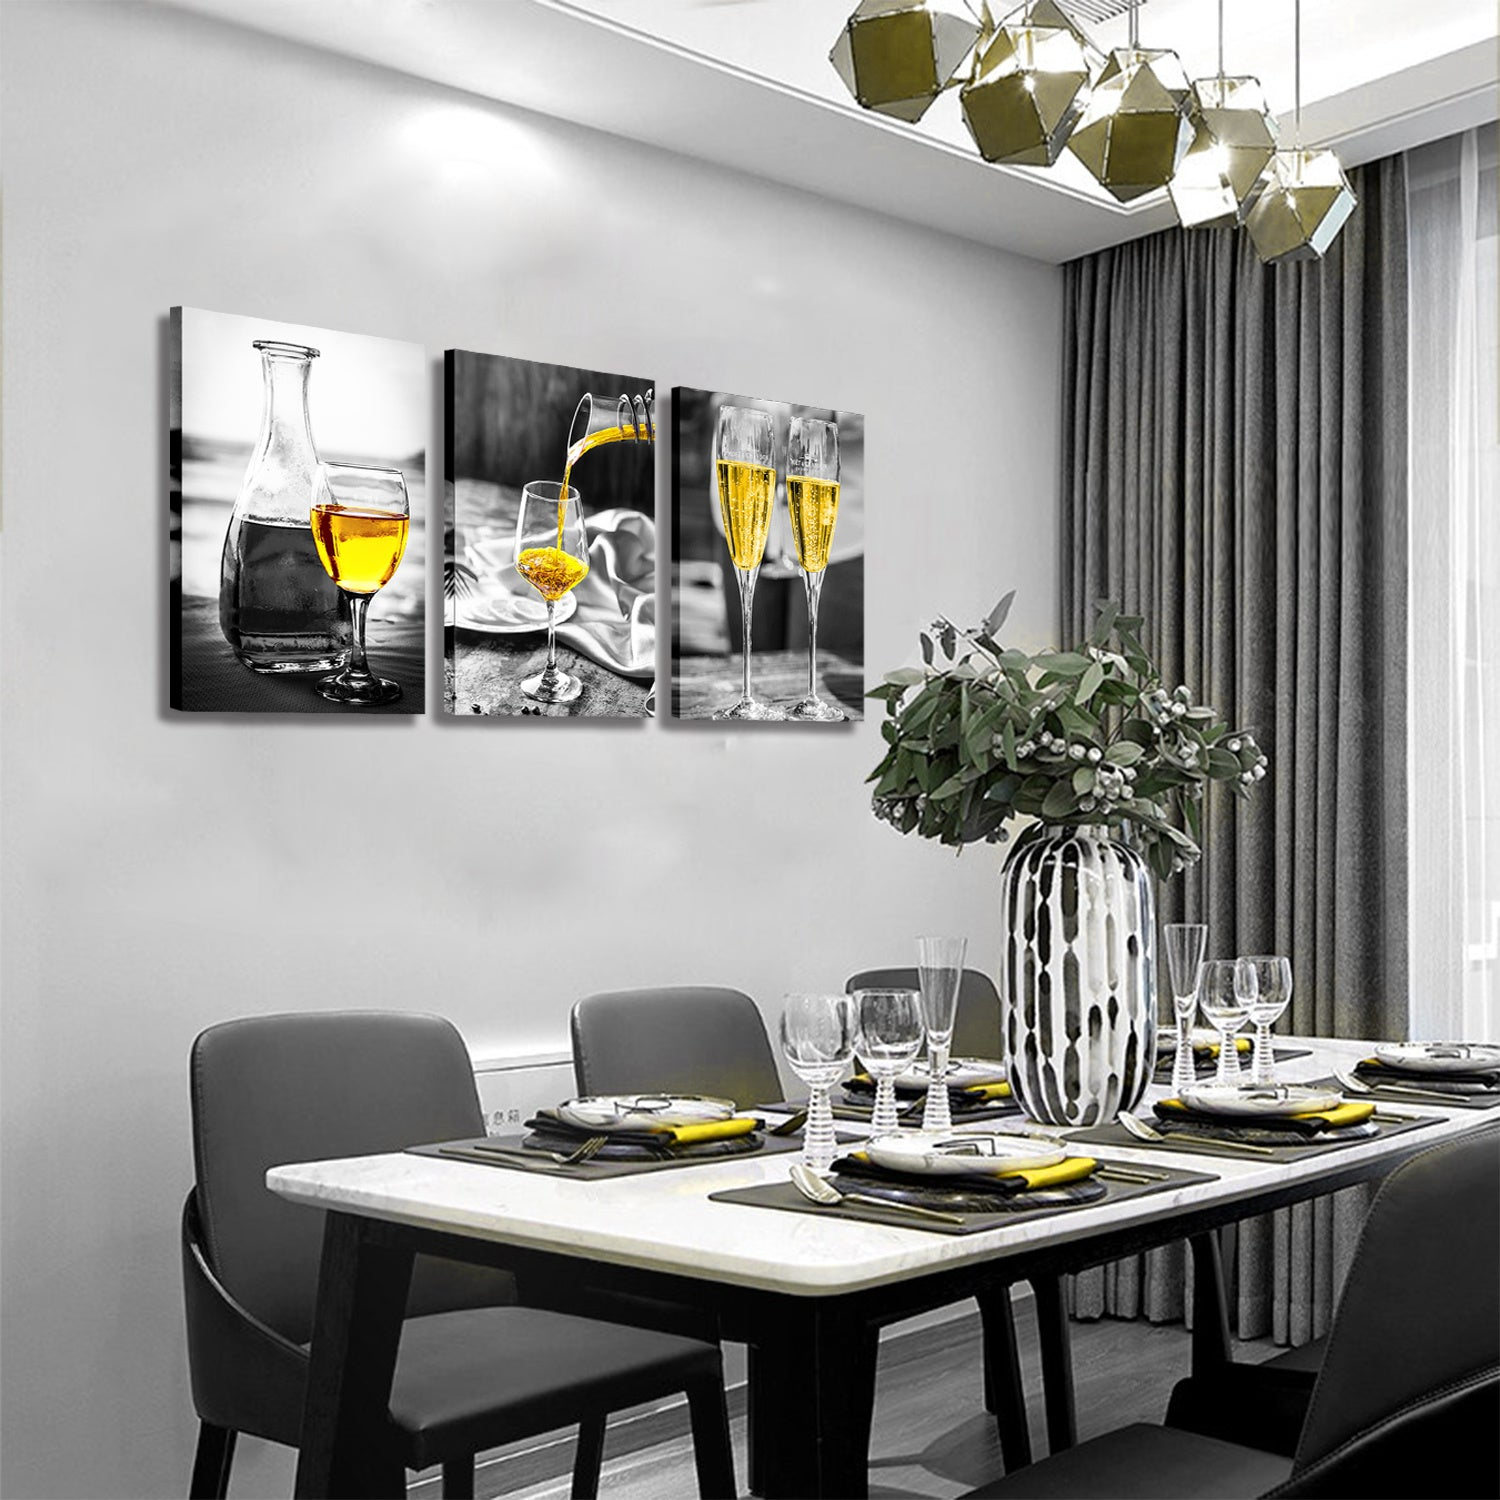 Kitchen Wall Art Gold Wine Glasses Canvas Prints Black and White Wall Art Wine Cups Modern Artwork for Dining Room Pubs Bar Home Decor